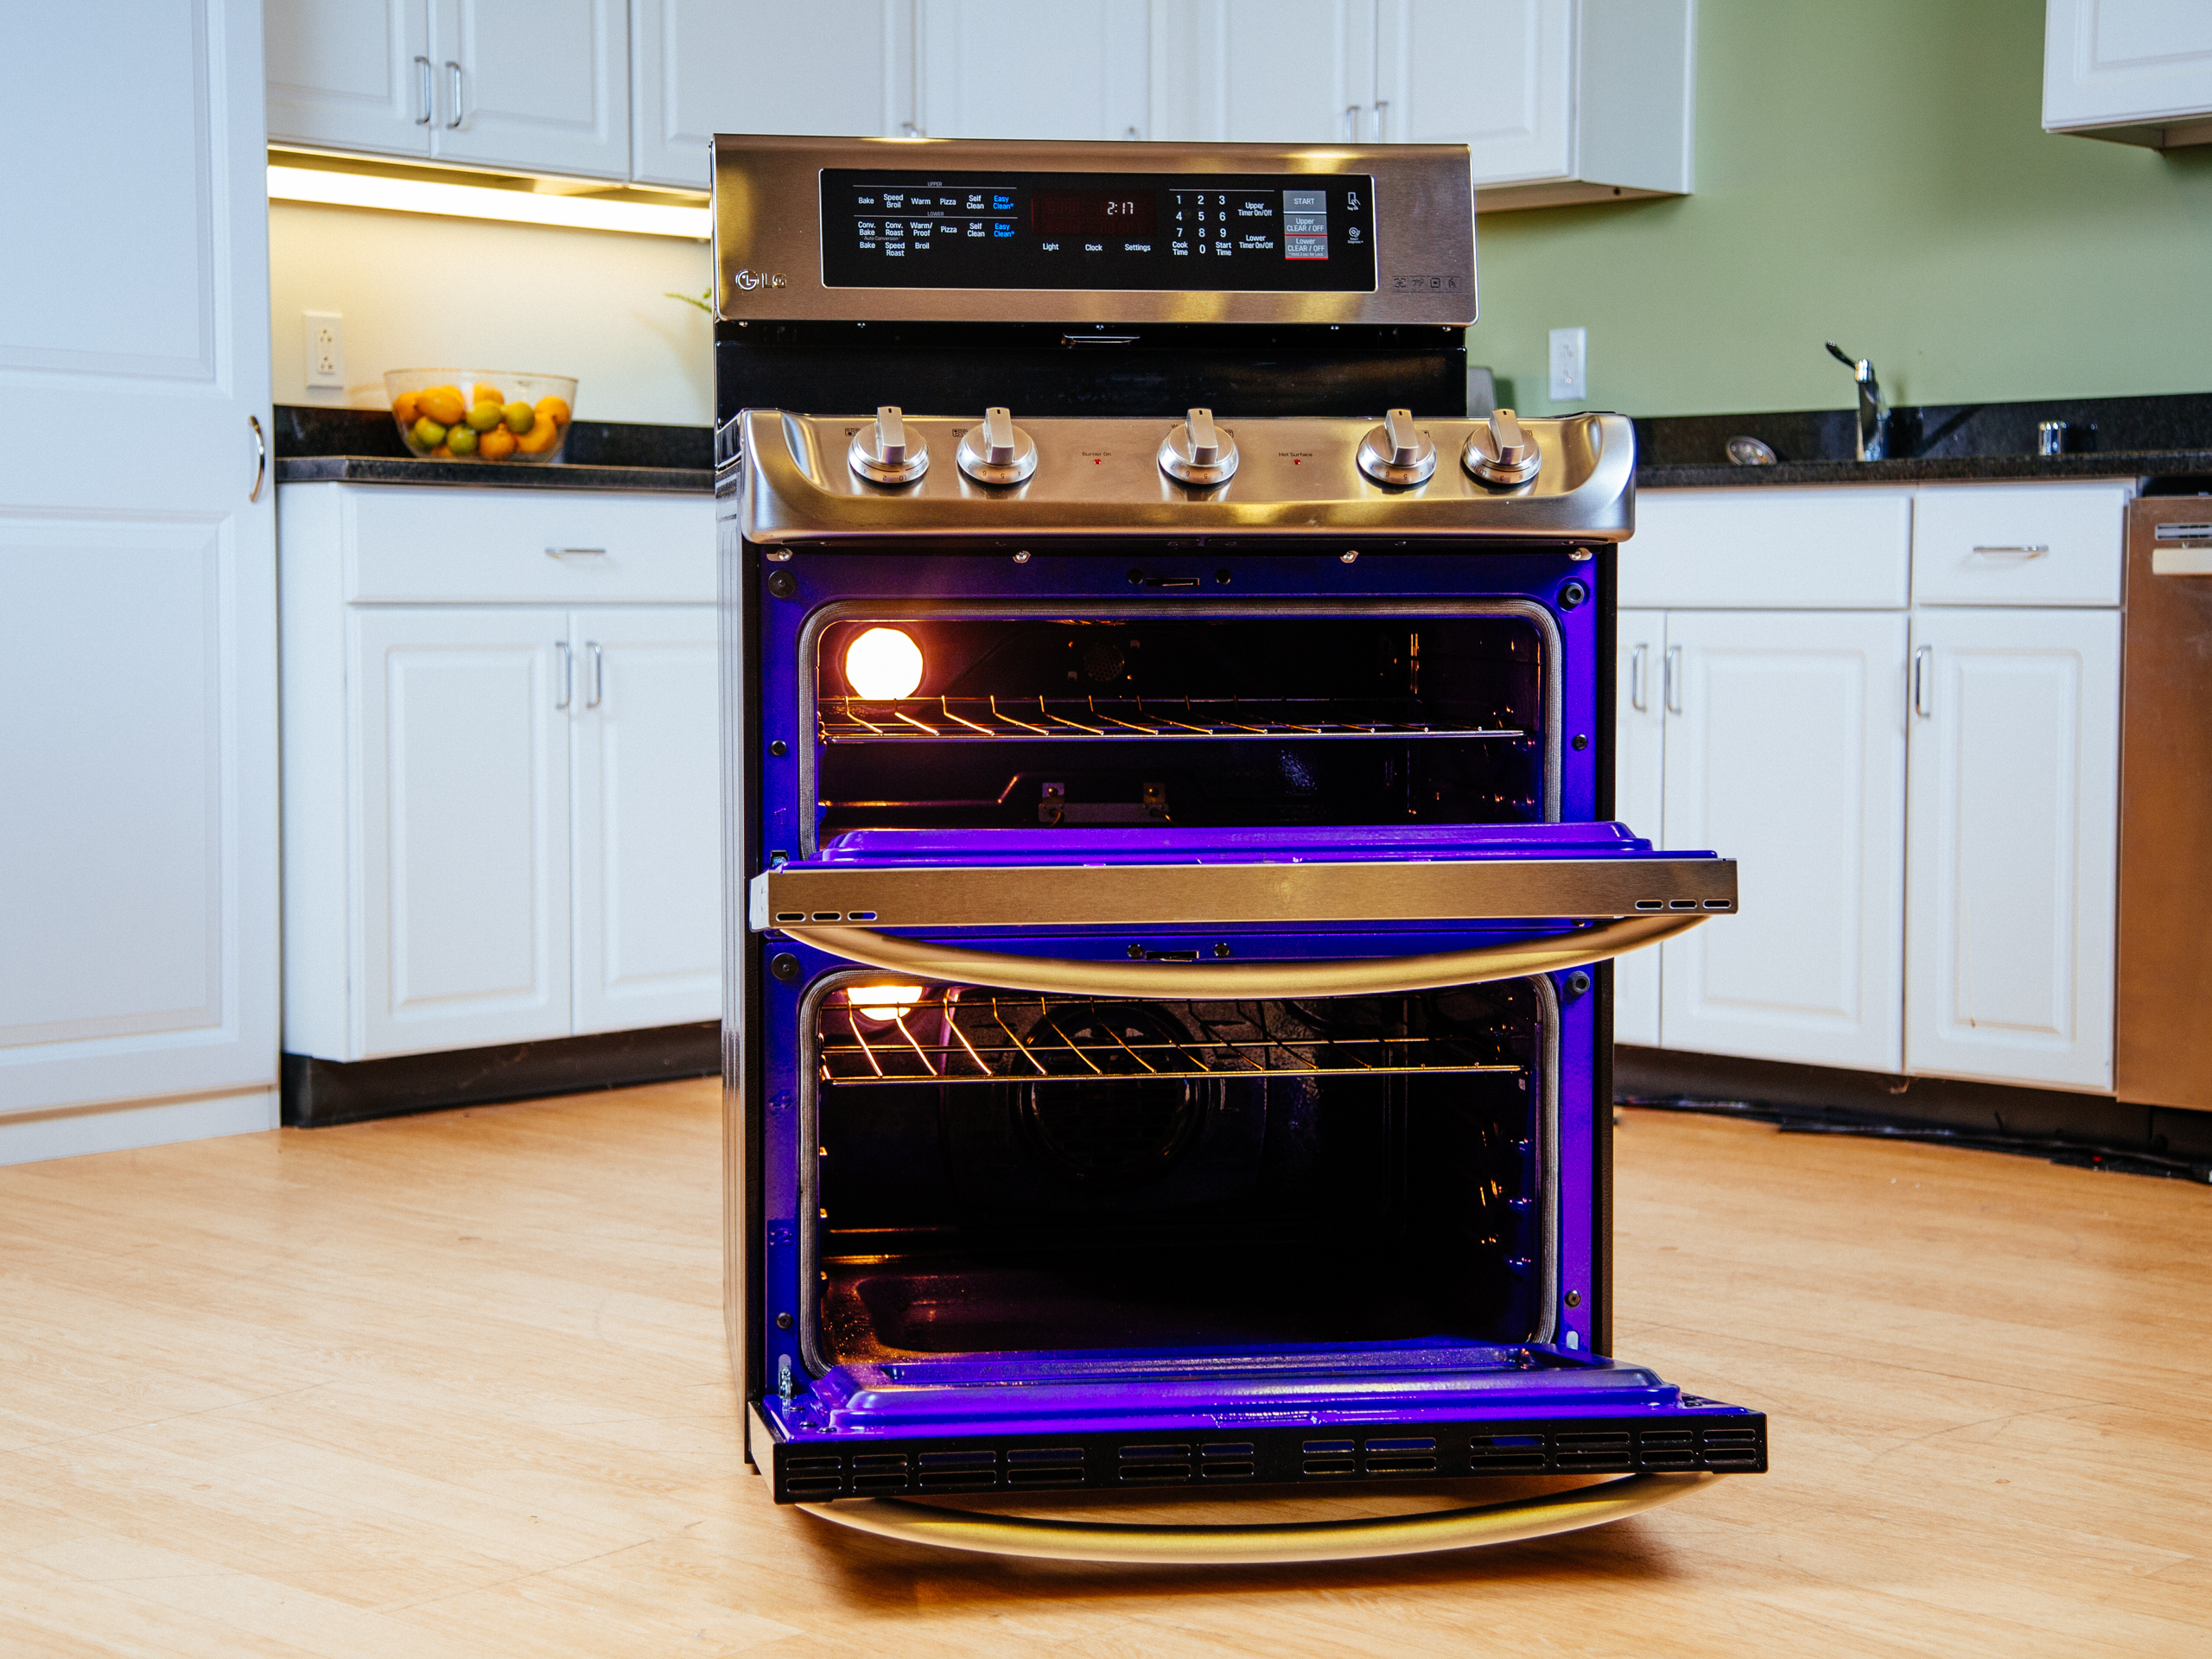 lg-lde4415st-electric-oven-product-photos-1.jpg